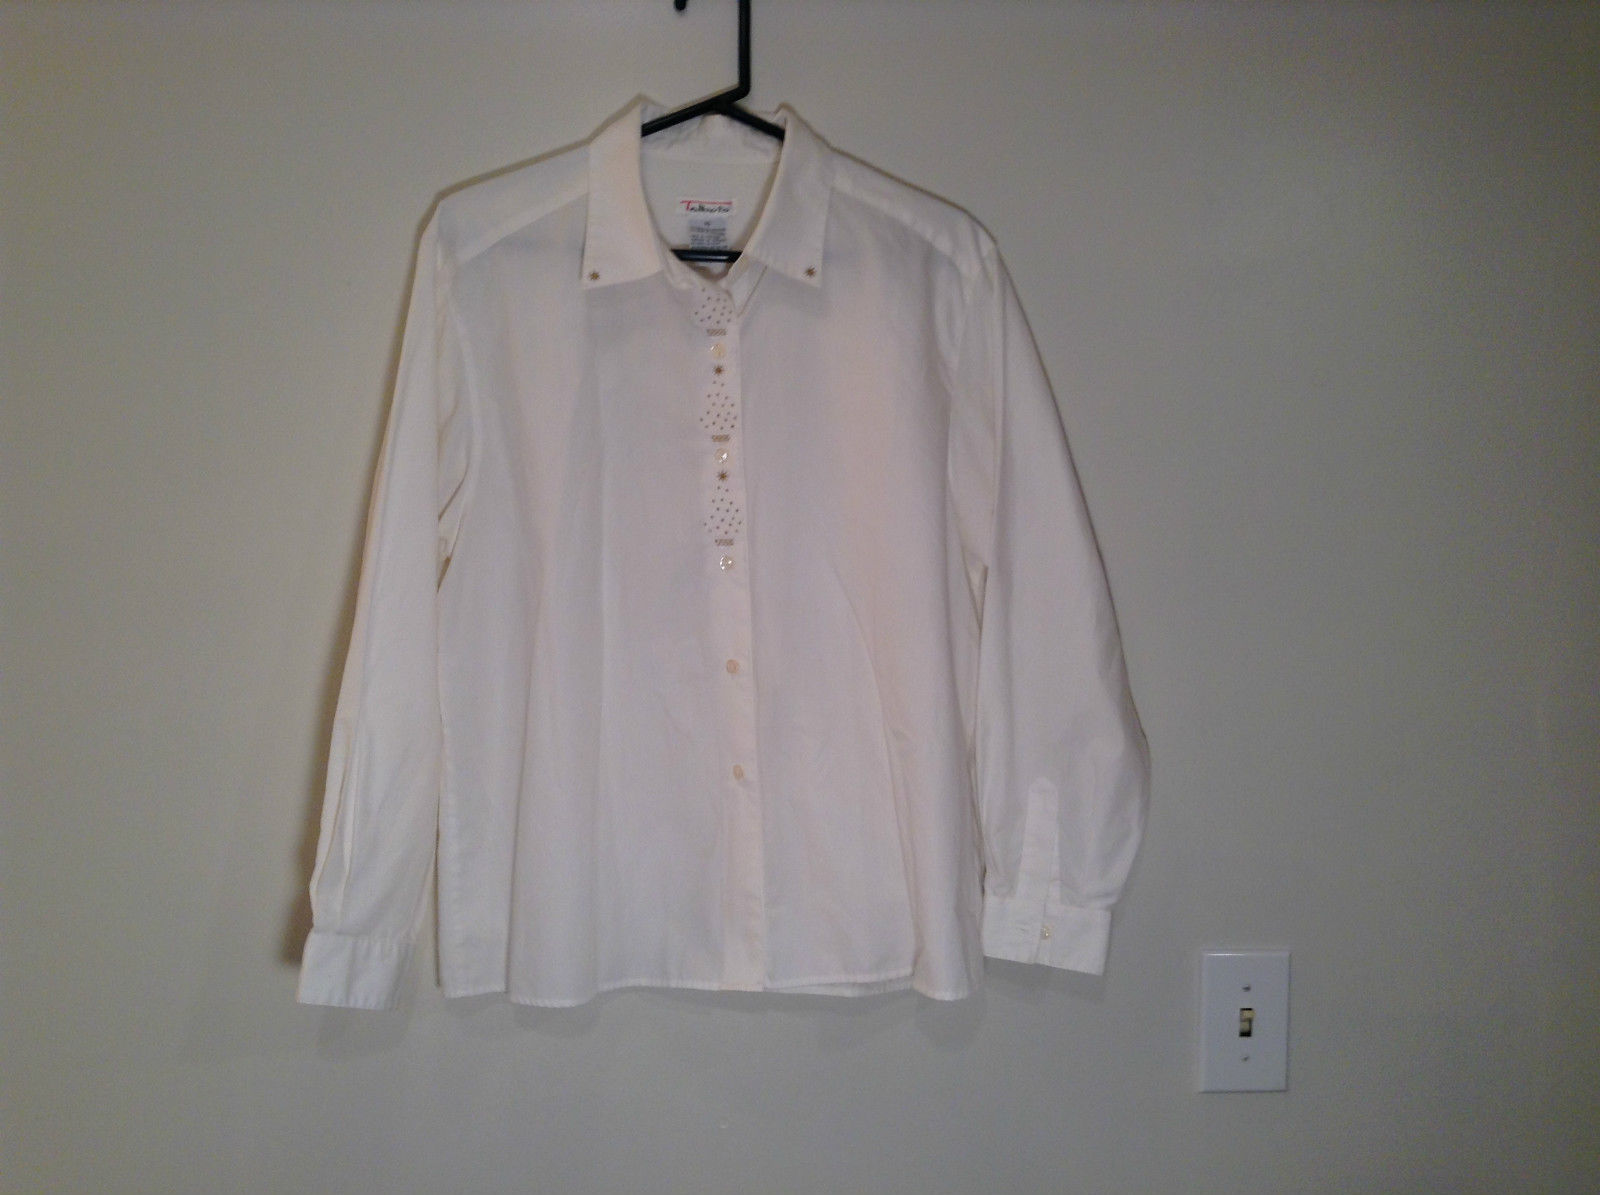 Talbots Size 16 Long Sleeve Button Up Blouse White Embroidery Front and Collar